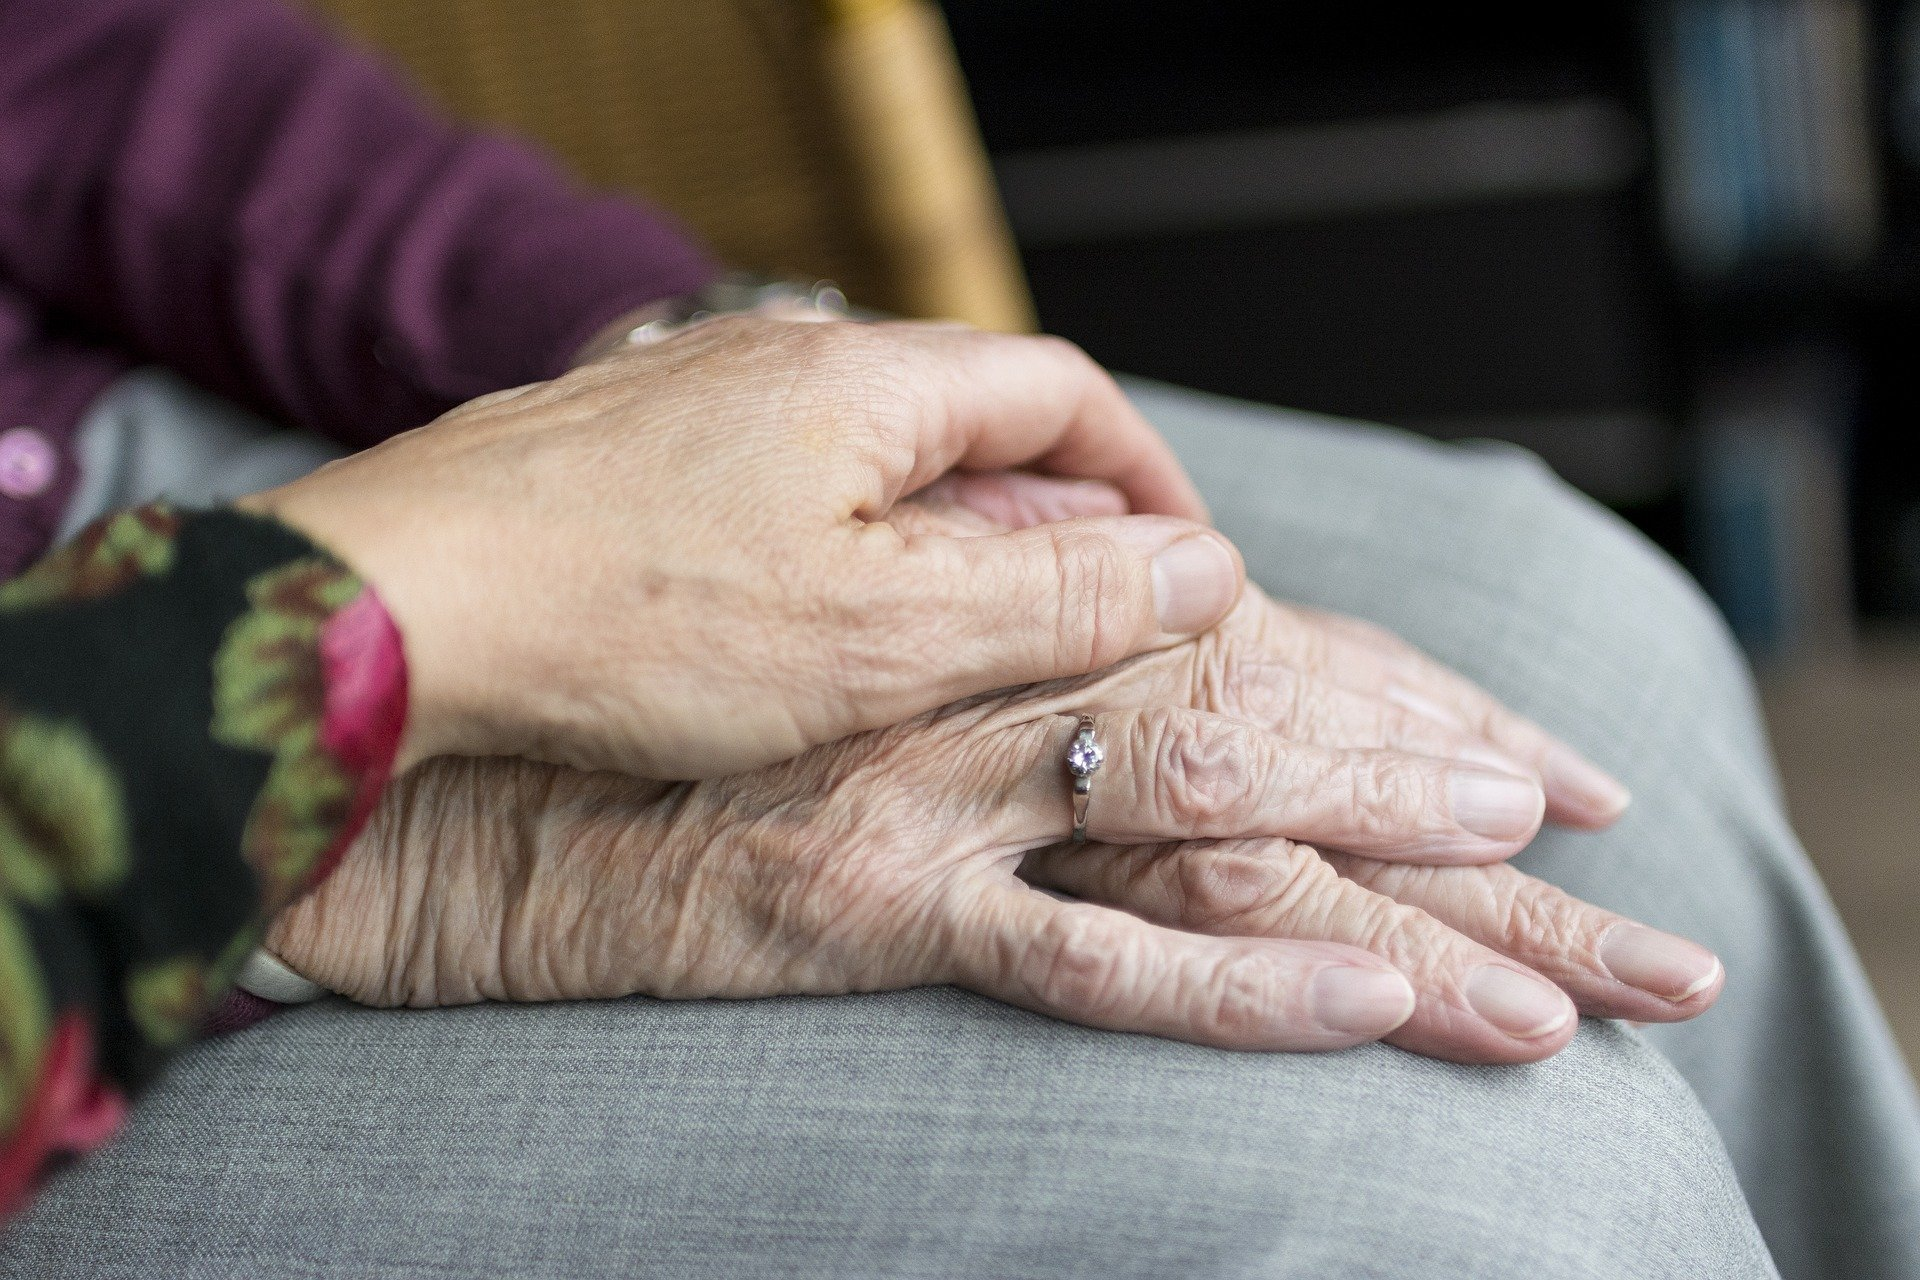 Tax Increases social care